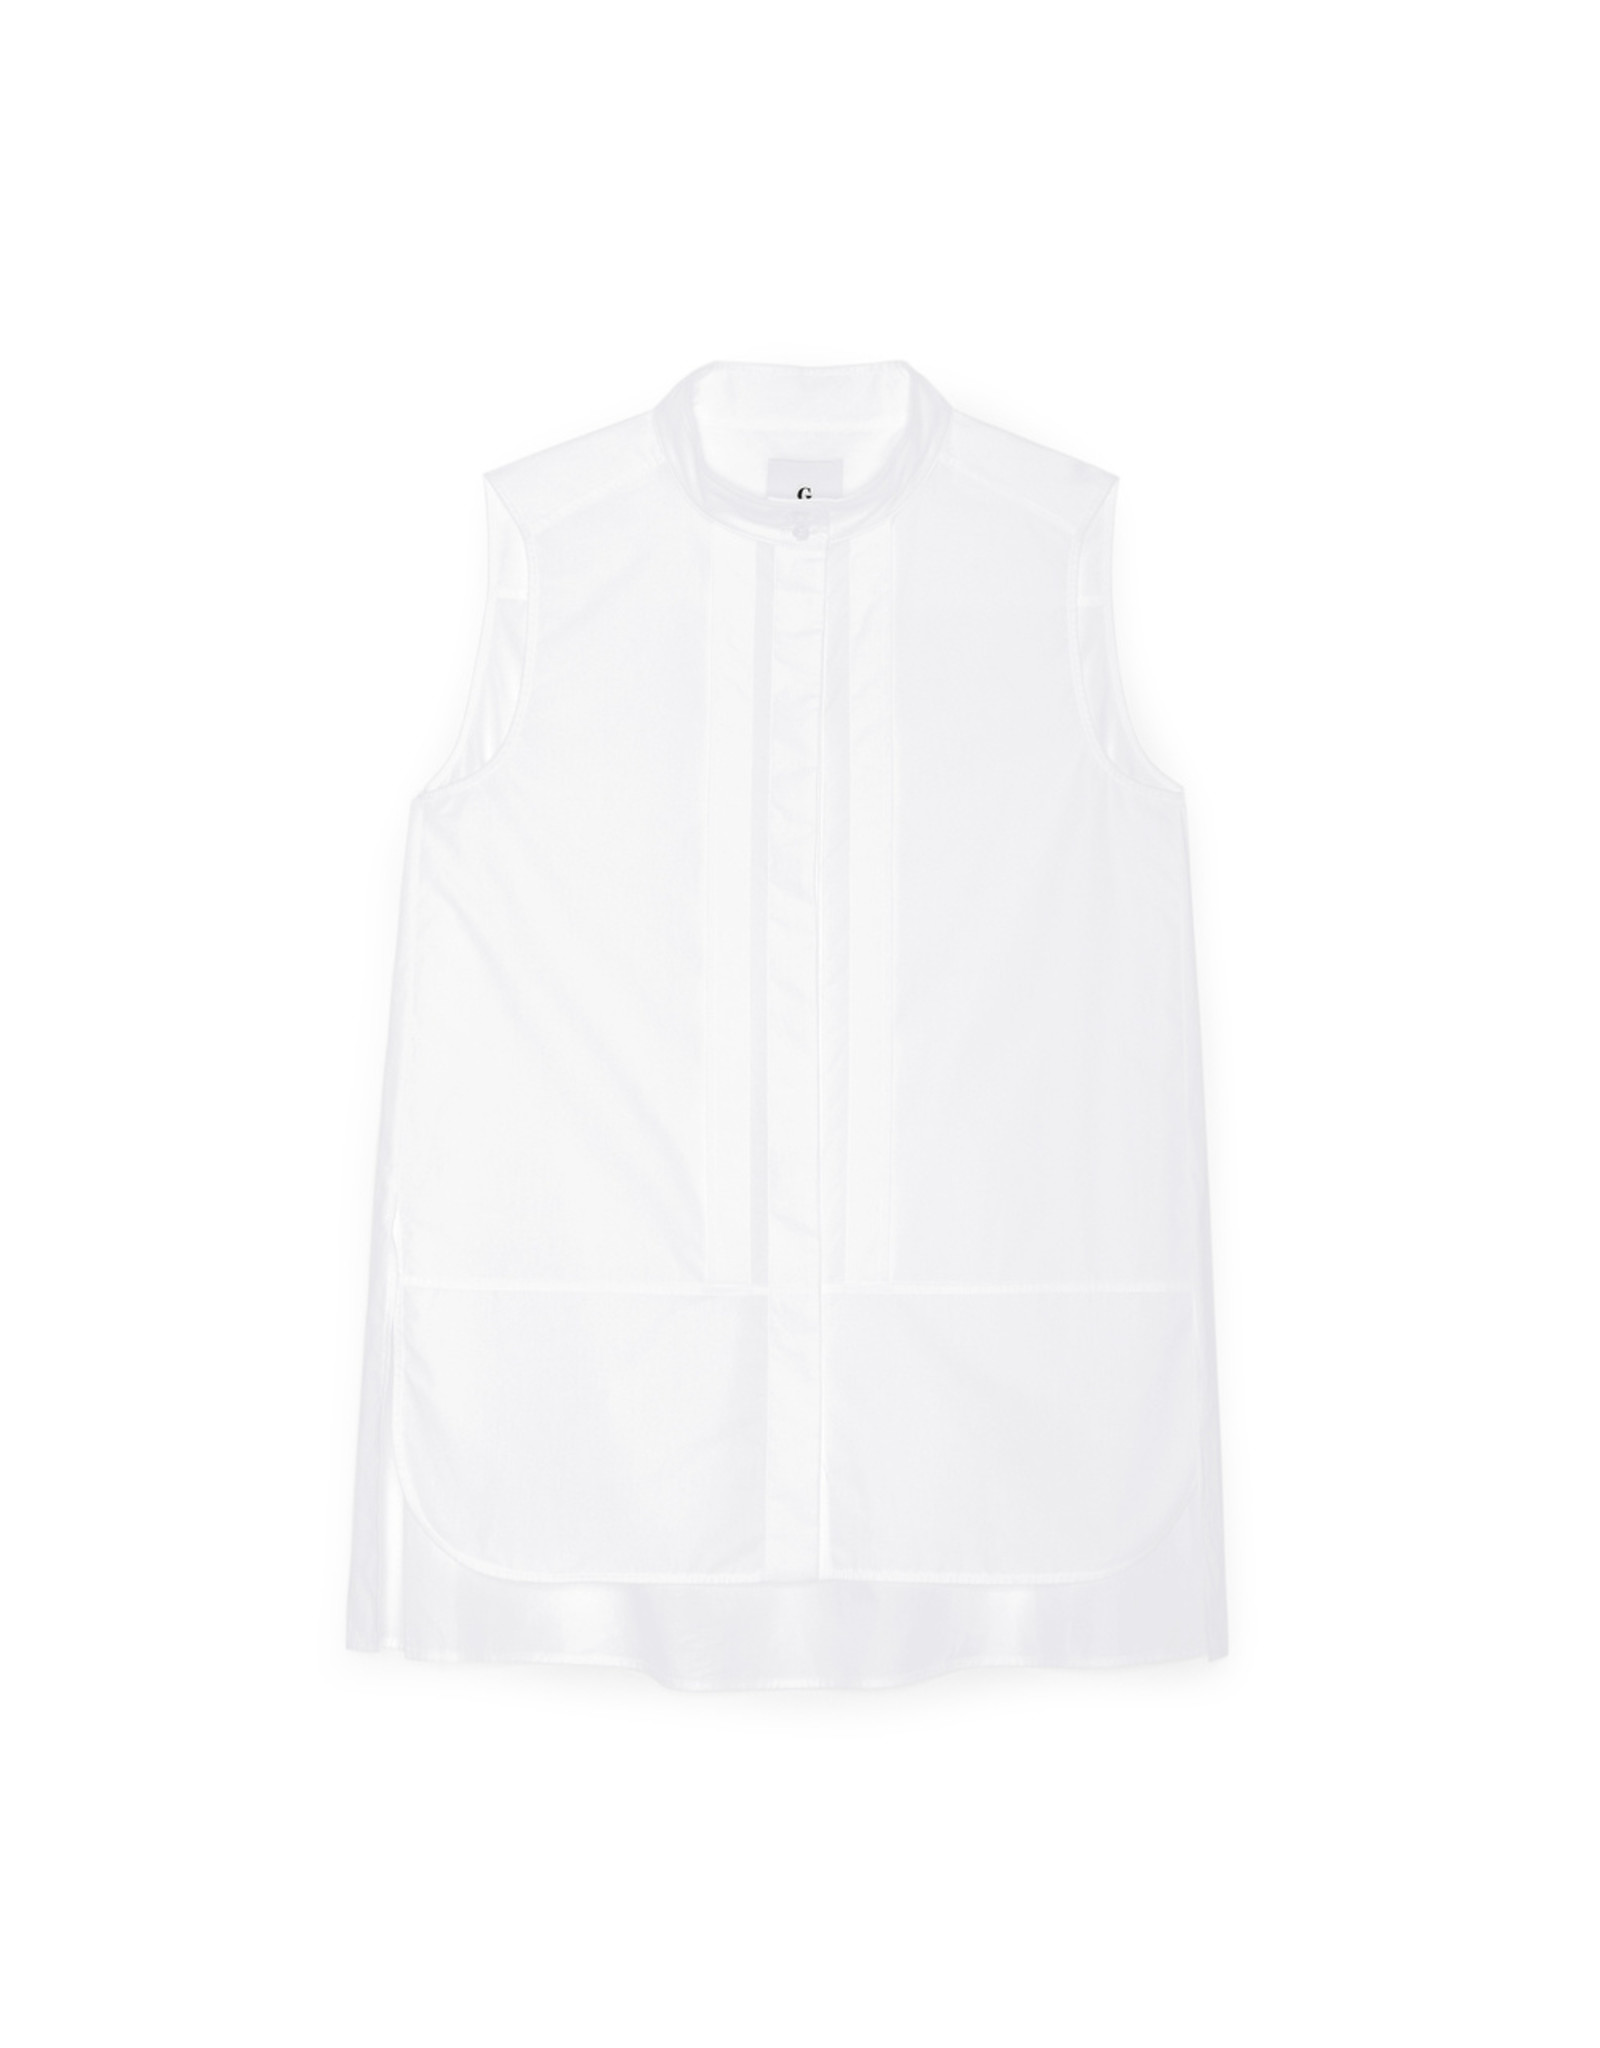 G. Label G. Label Casey Pleat Collar Shirt (Color: White, Size: 6)